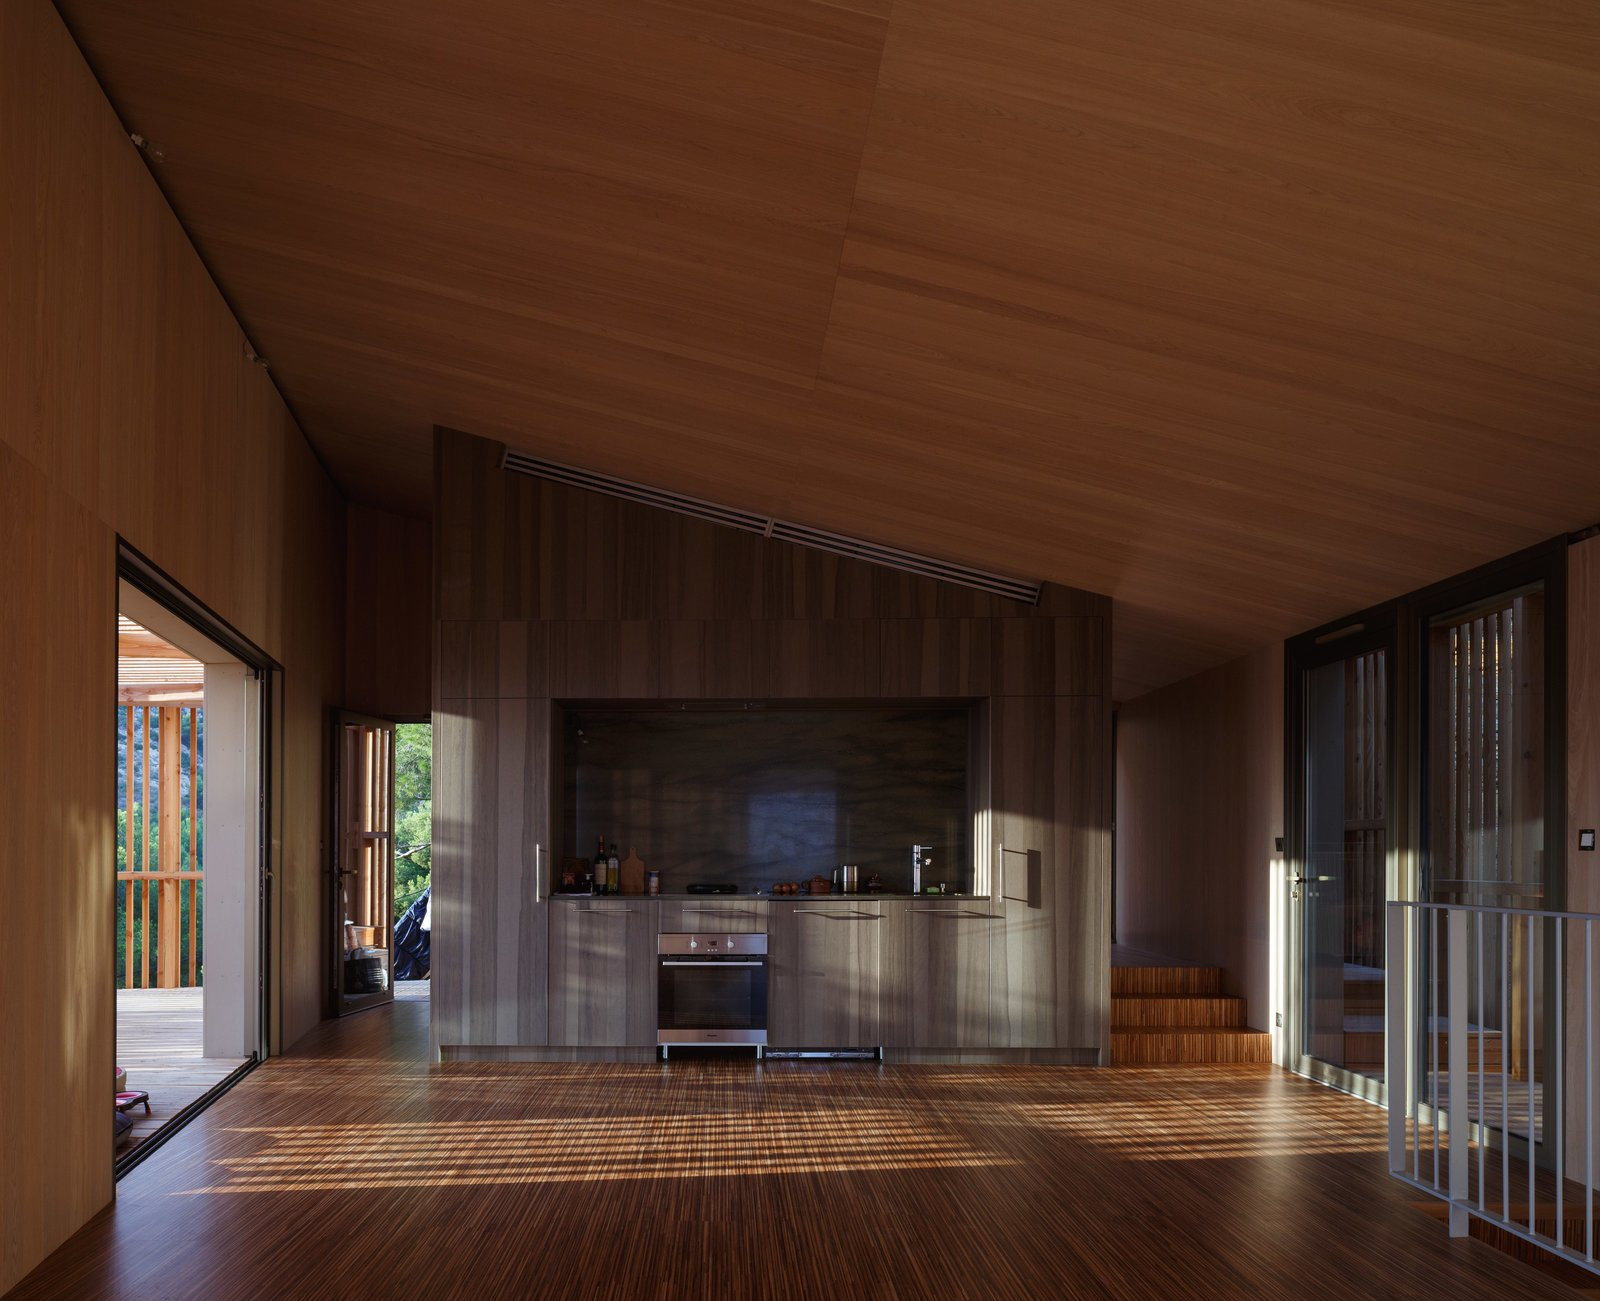 Medium Hardwood Floor, Kitchen, Granite Counter, Wall Lighting, and Wood Cabinet  The KGET in Marseille